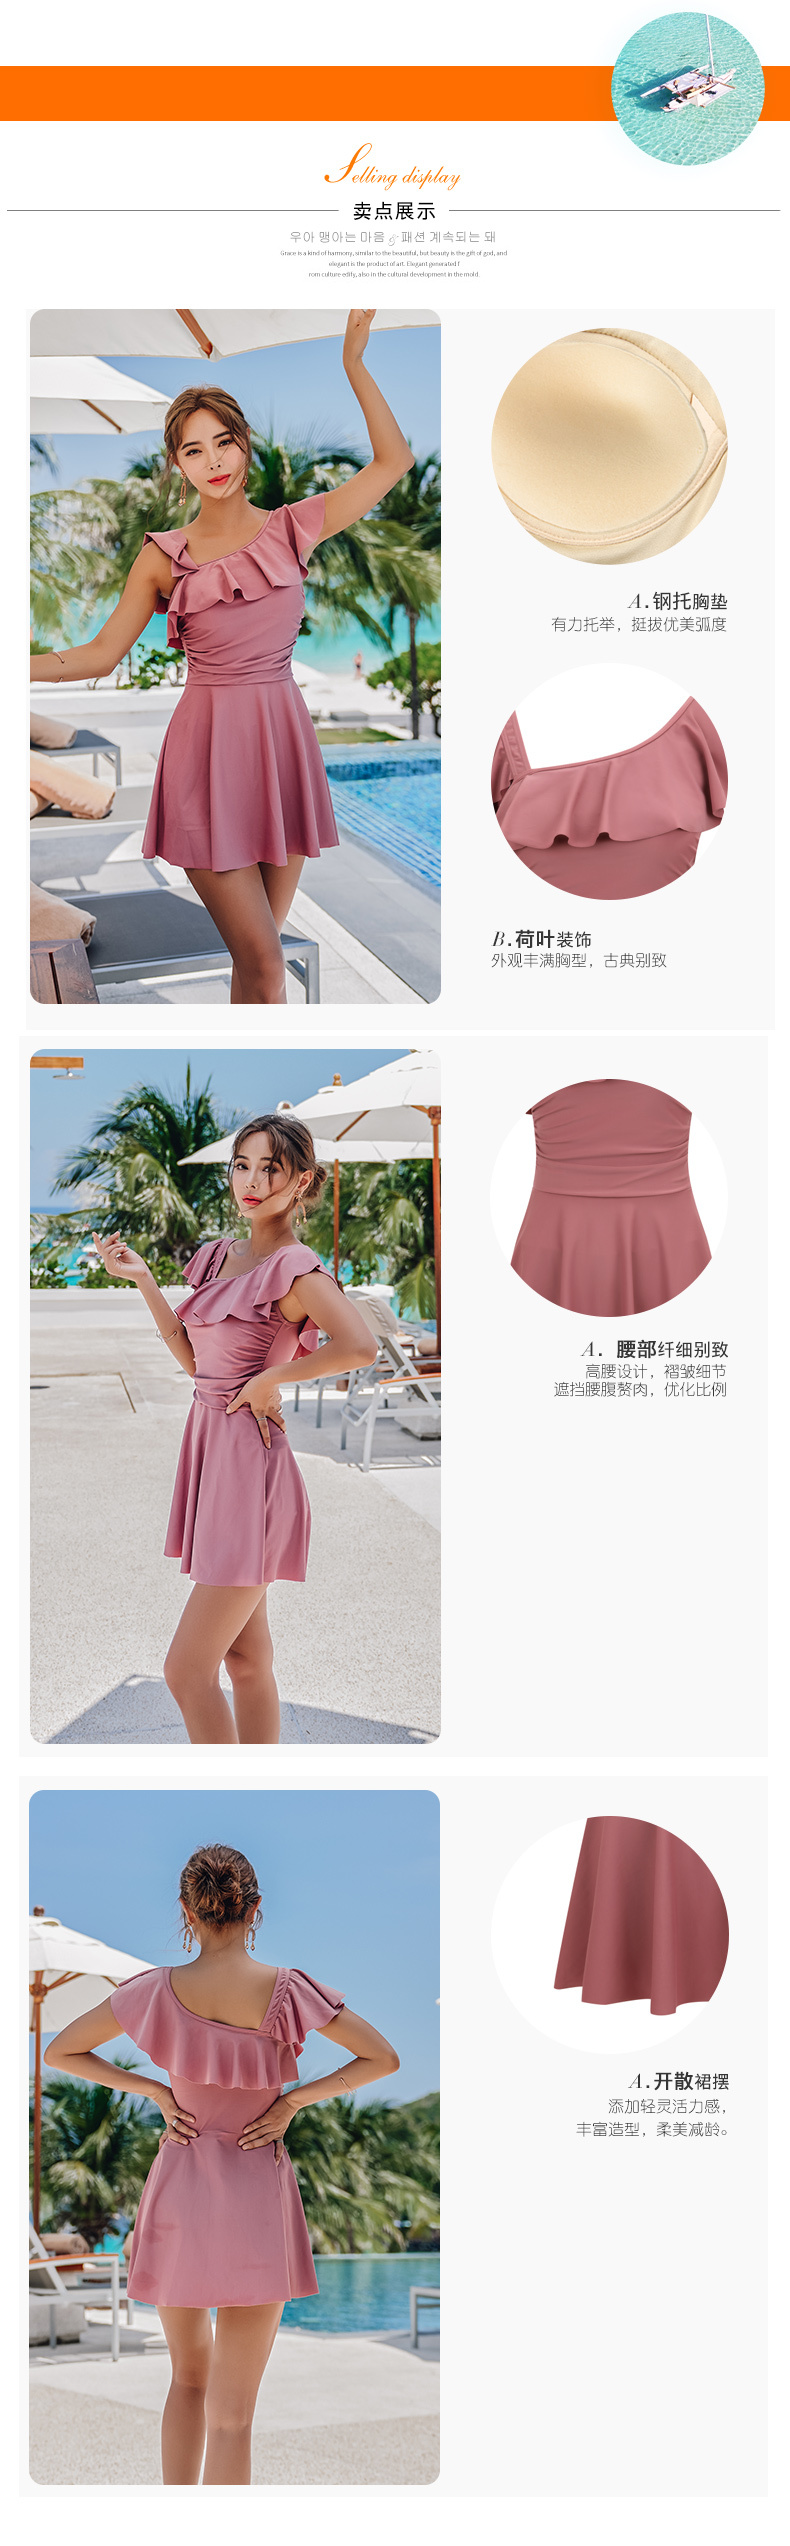 2020 SANQi Swimwear Female Korean Cover Belly Slim Sexy One Piece Dress  Conservative Hot Spring Swimsuit With Chest Pad Swimming Suit T200710 From  Luo05, $29.39 | DHgate.Com